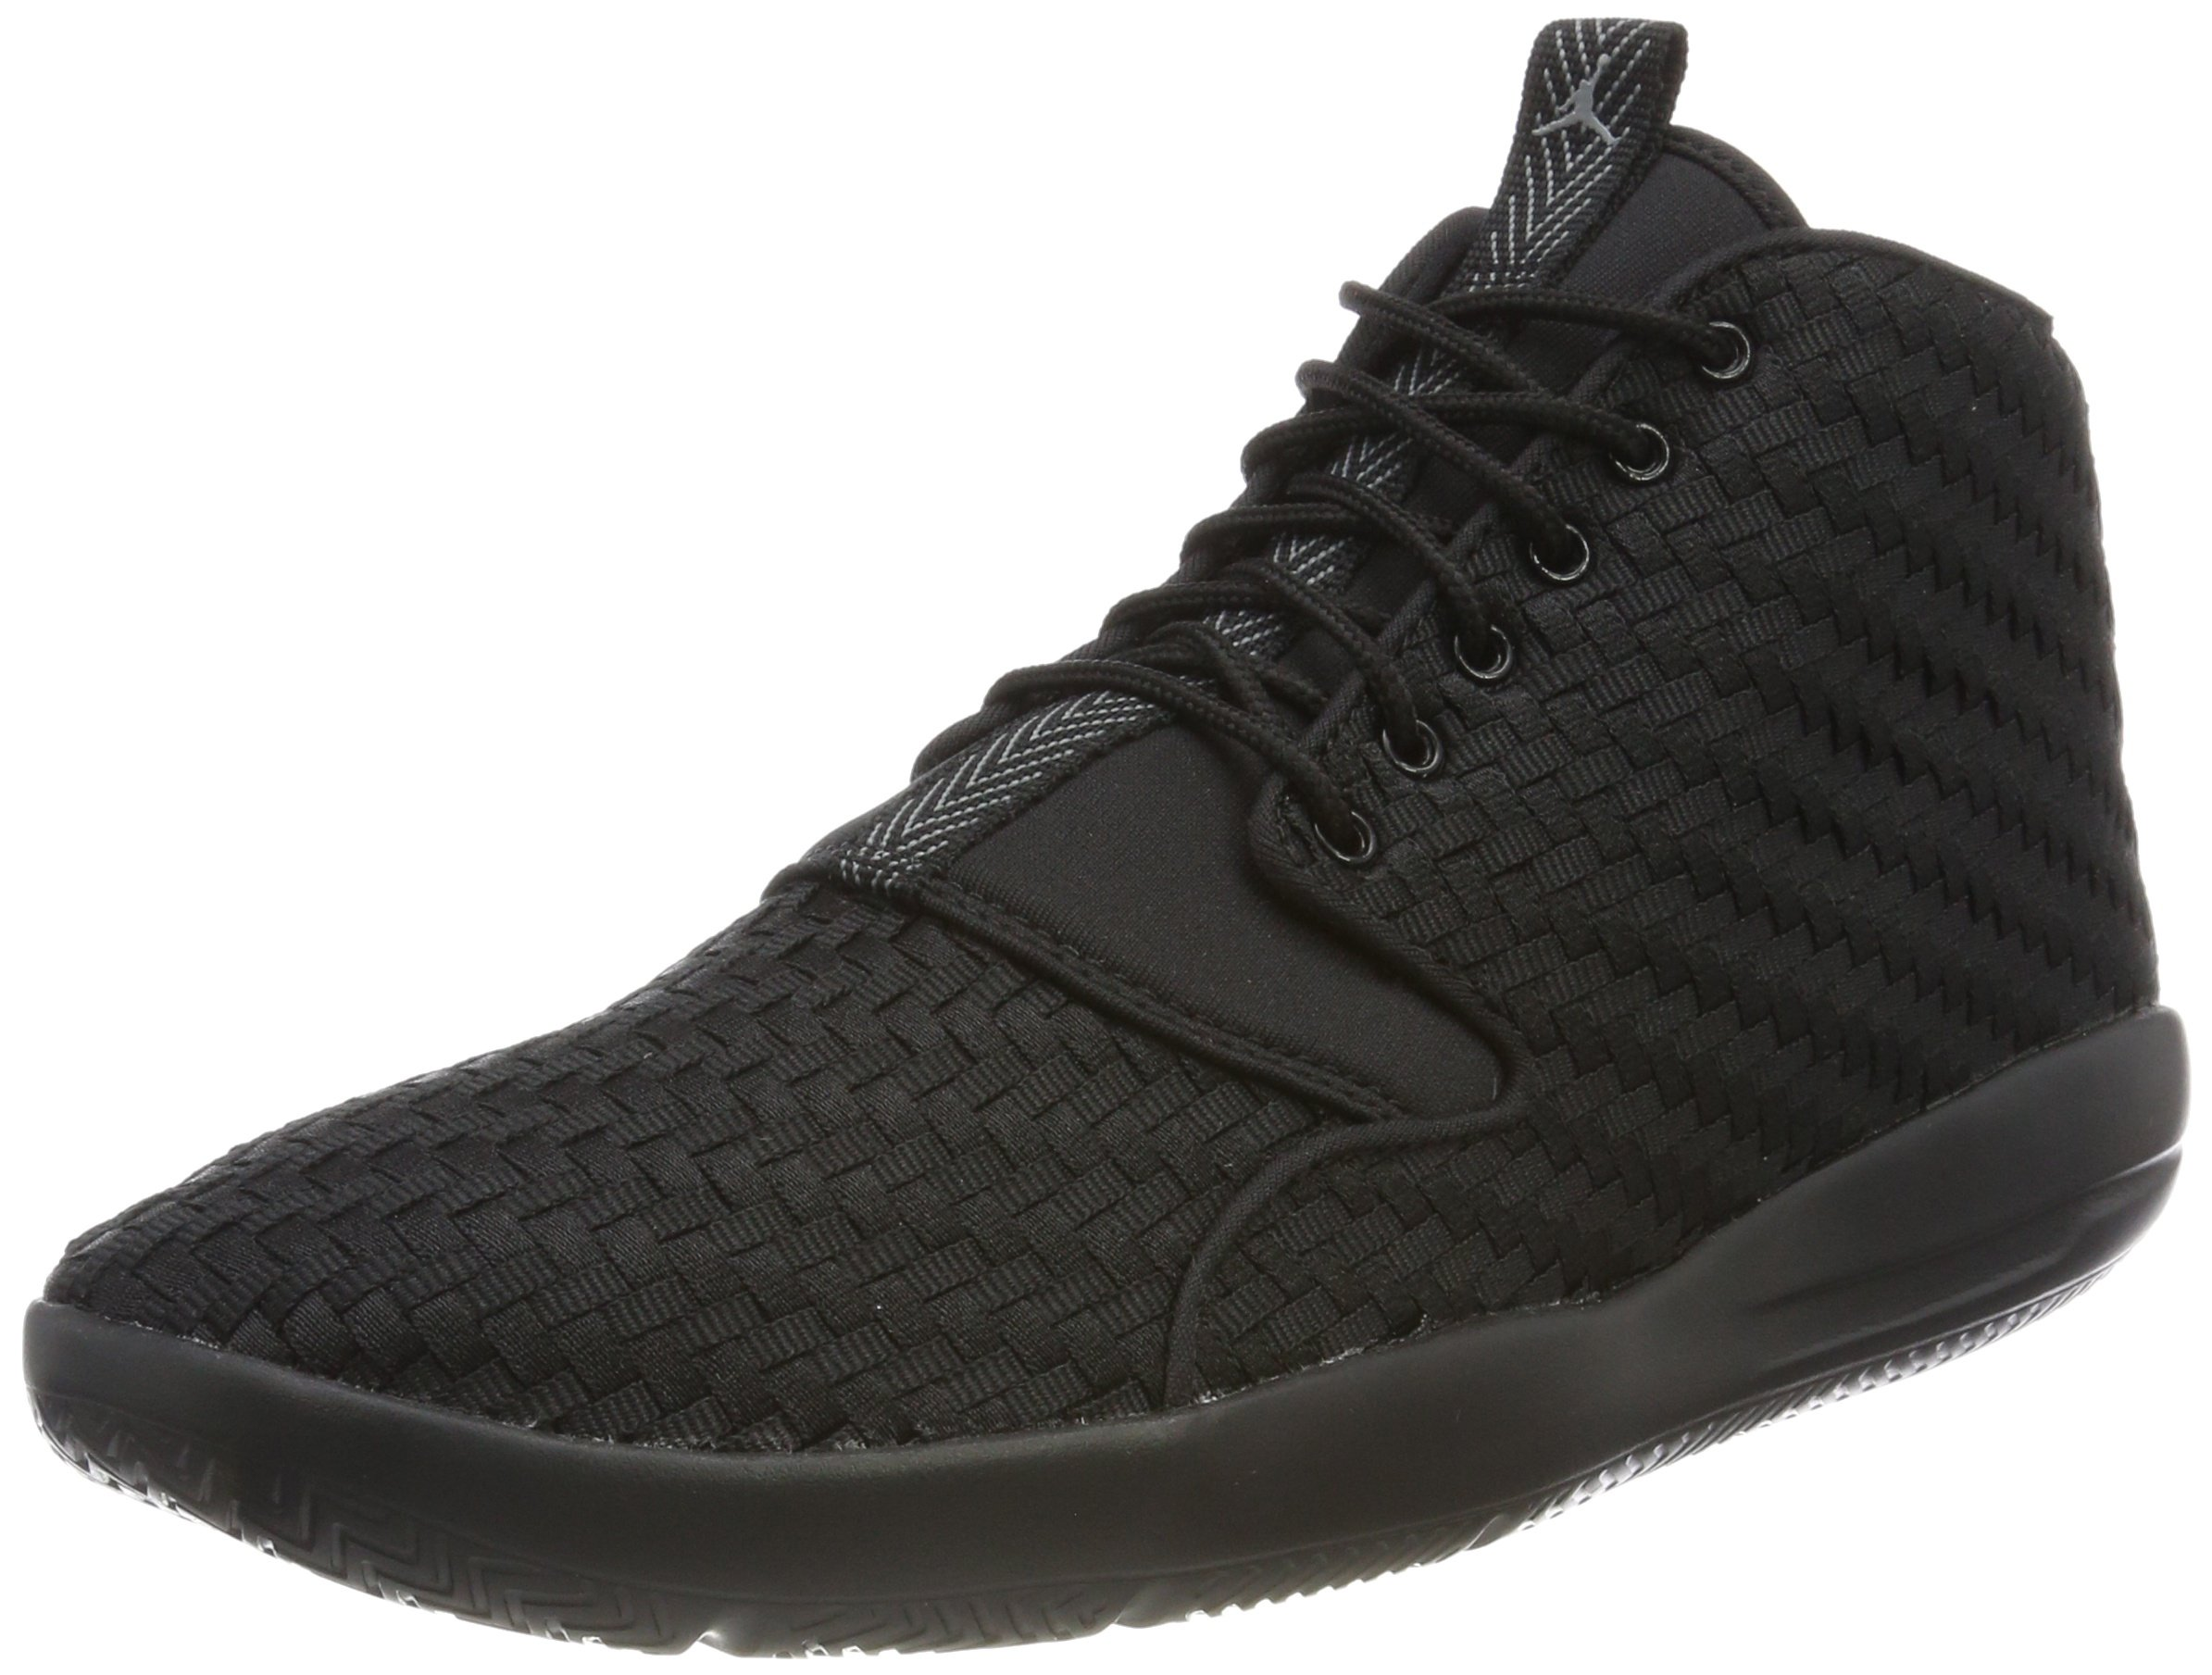 2e8ca8edfb739c Galleon - NIKE Air Jordan Eclipse Chukka Mens Trainers 881453 Sneakers  Shoes (US 8.5